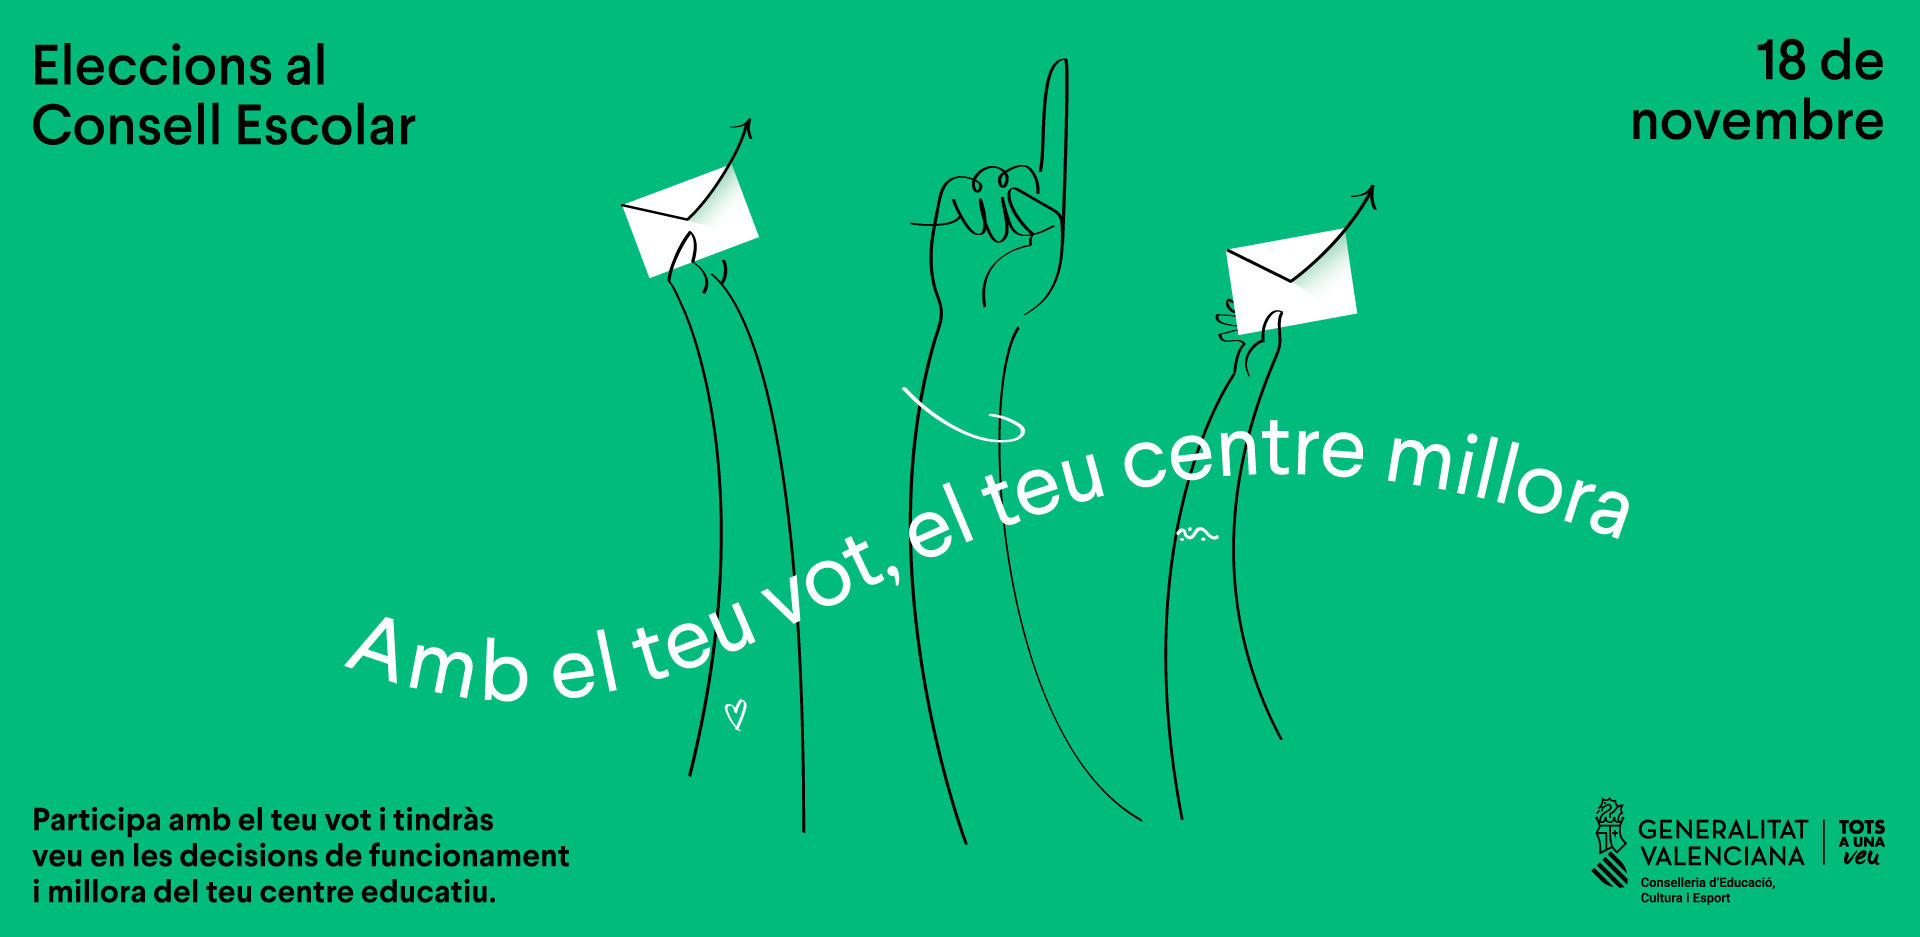 21.10.19-Consell-Electoral-VAL